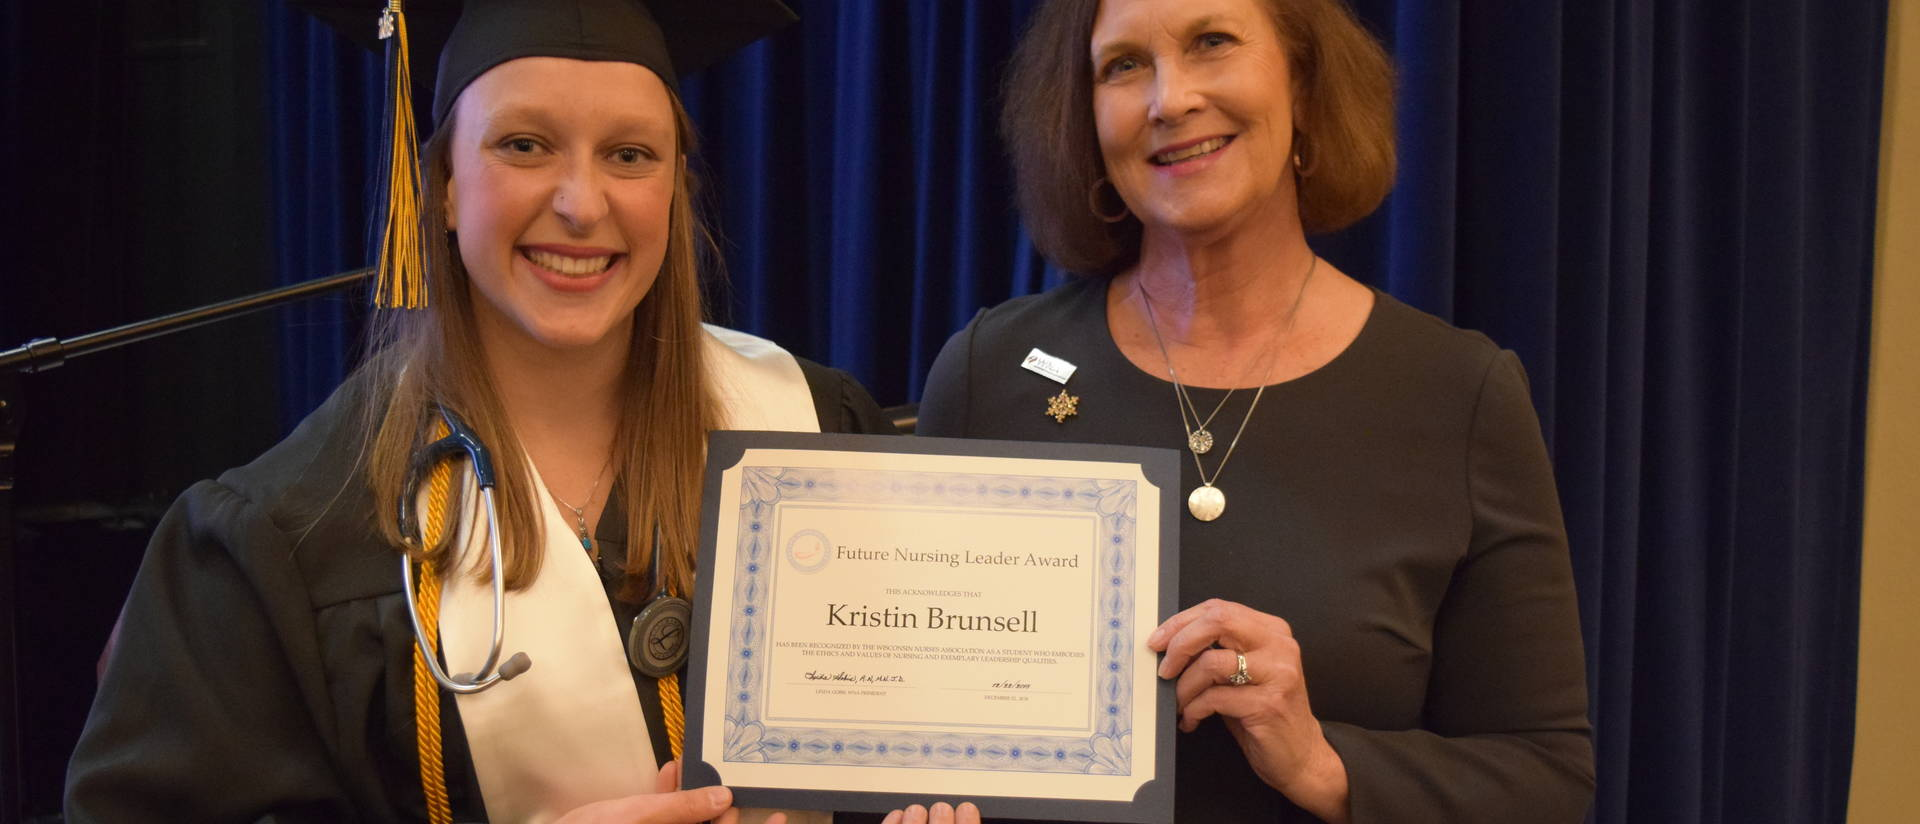 Kristin Brunsell wins leadership award